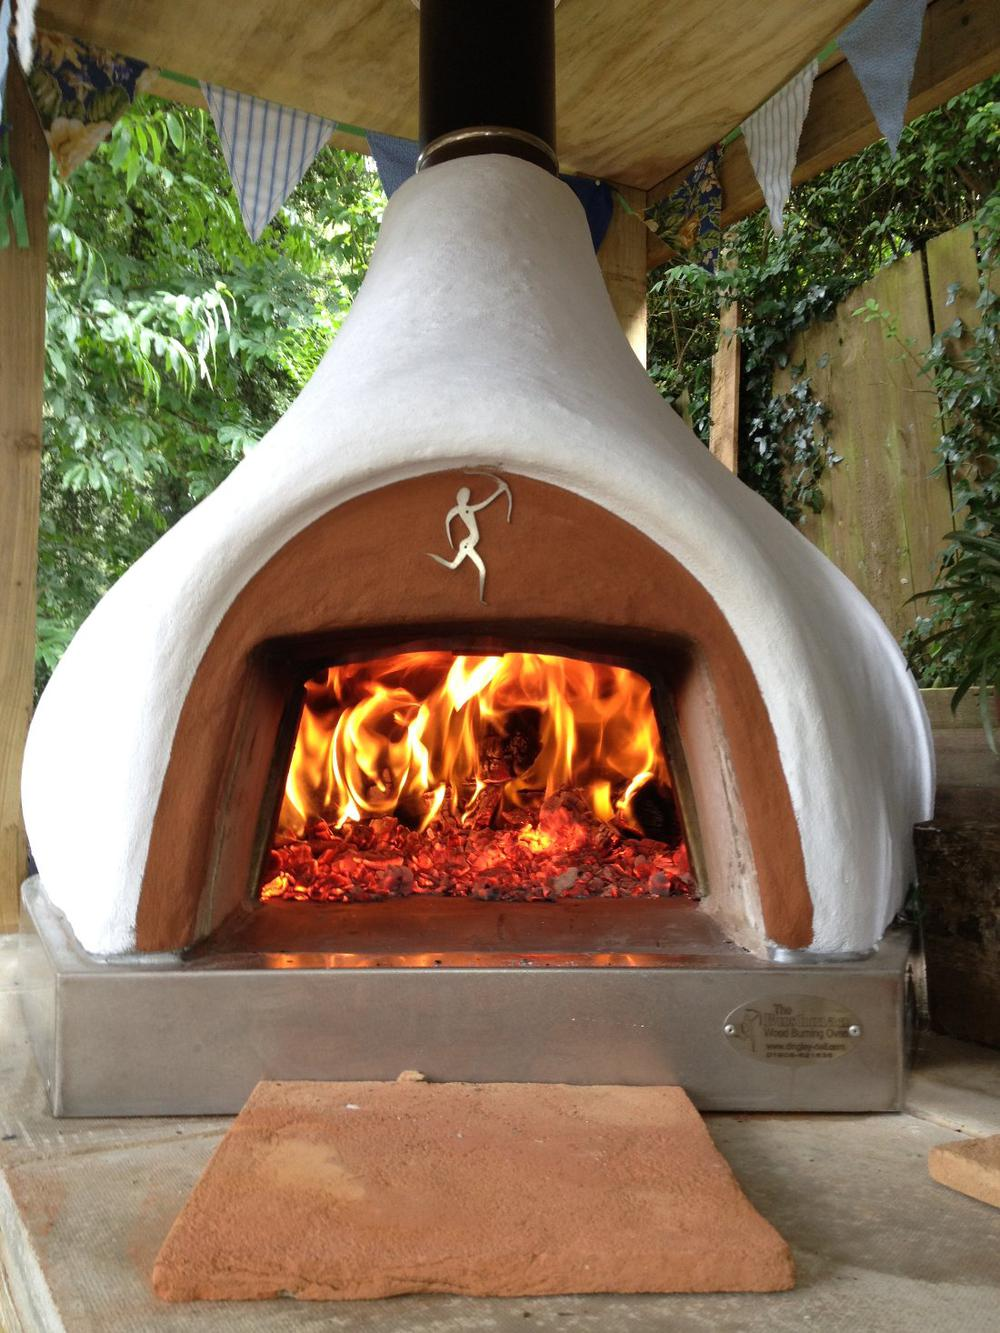 Wood Fired Pizza Ovens Dome HomesChimineas From Dingley Dell Enterprises